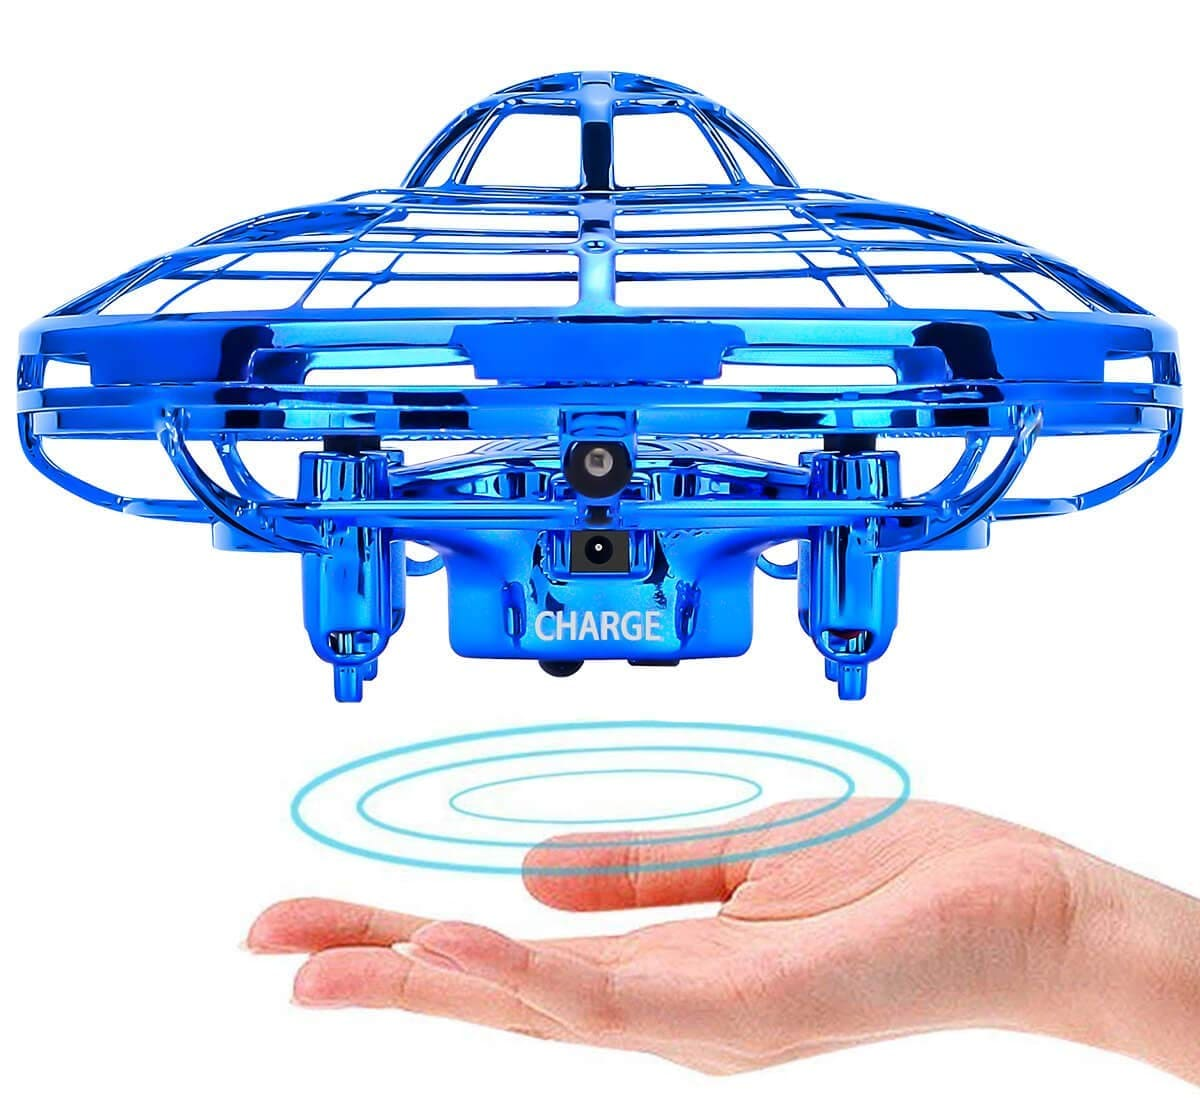 """Mini Quadcopter Drone - """"Force1 Scoot"""" Hands Free Hover Drone Gold - 4"""